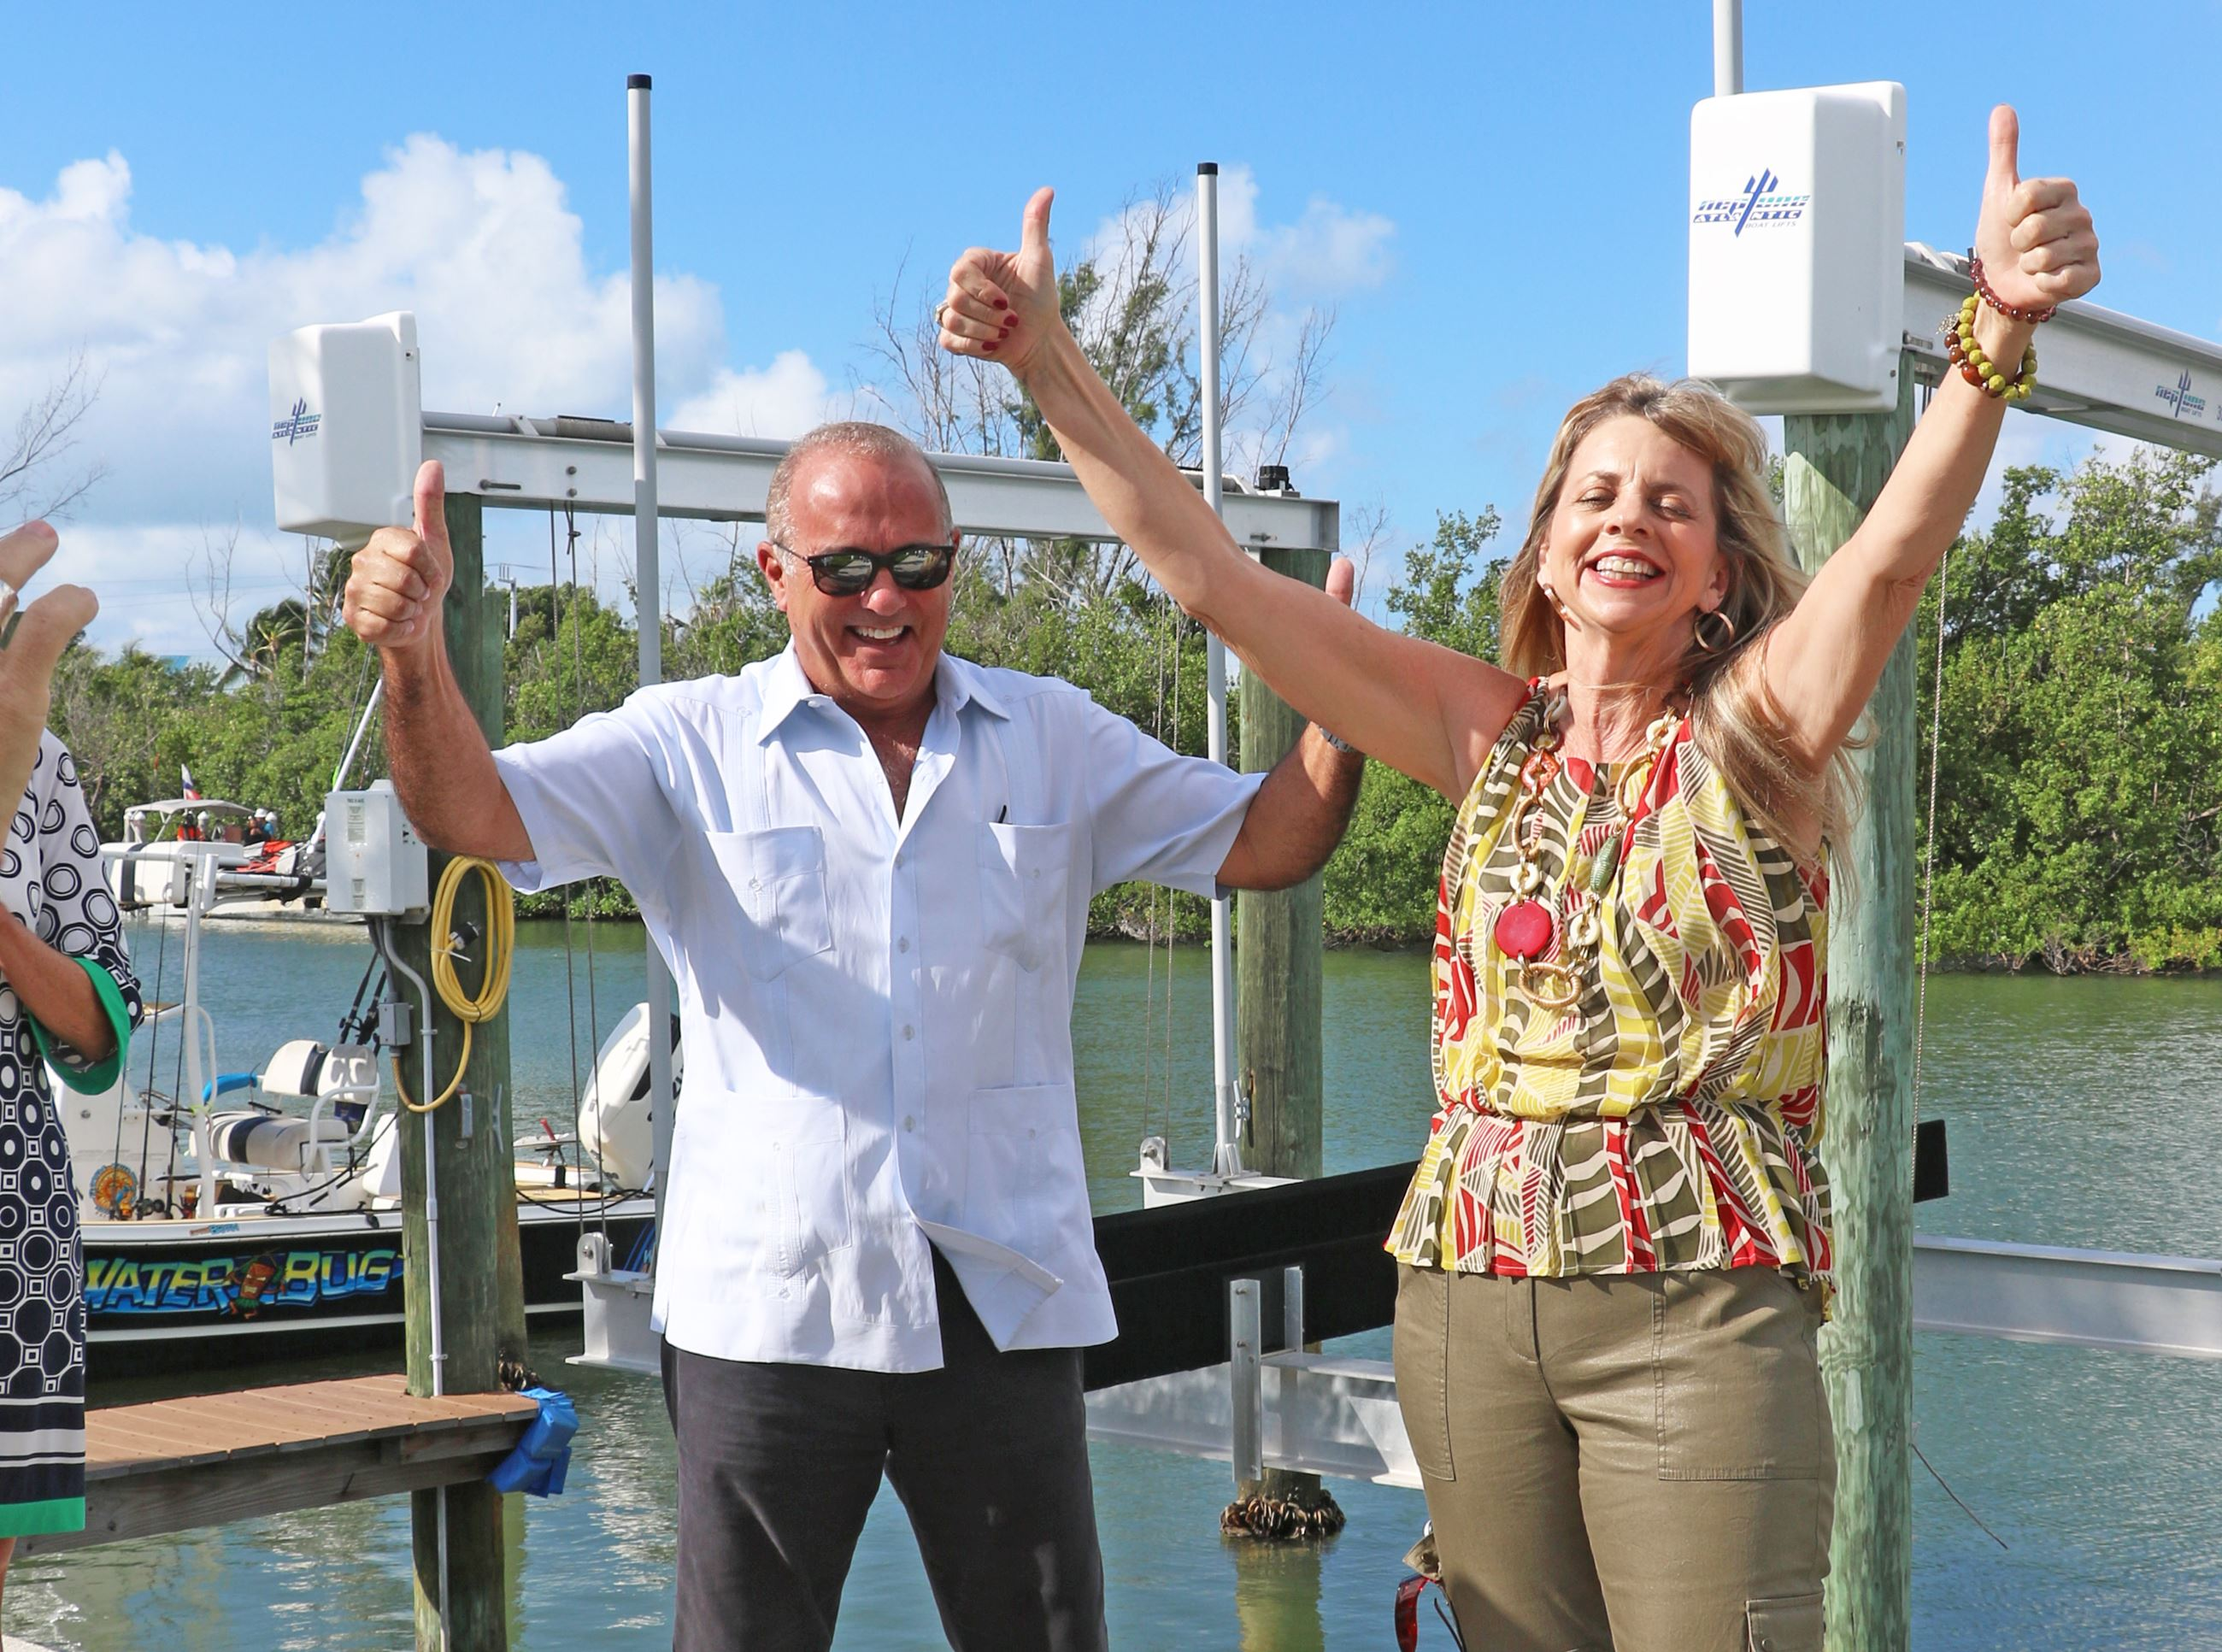 Rhonda Haag and Roman Gastesi celebrate at the last canal being cleared